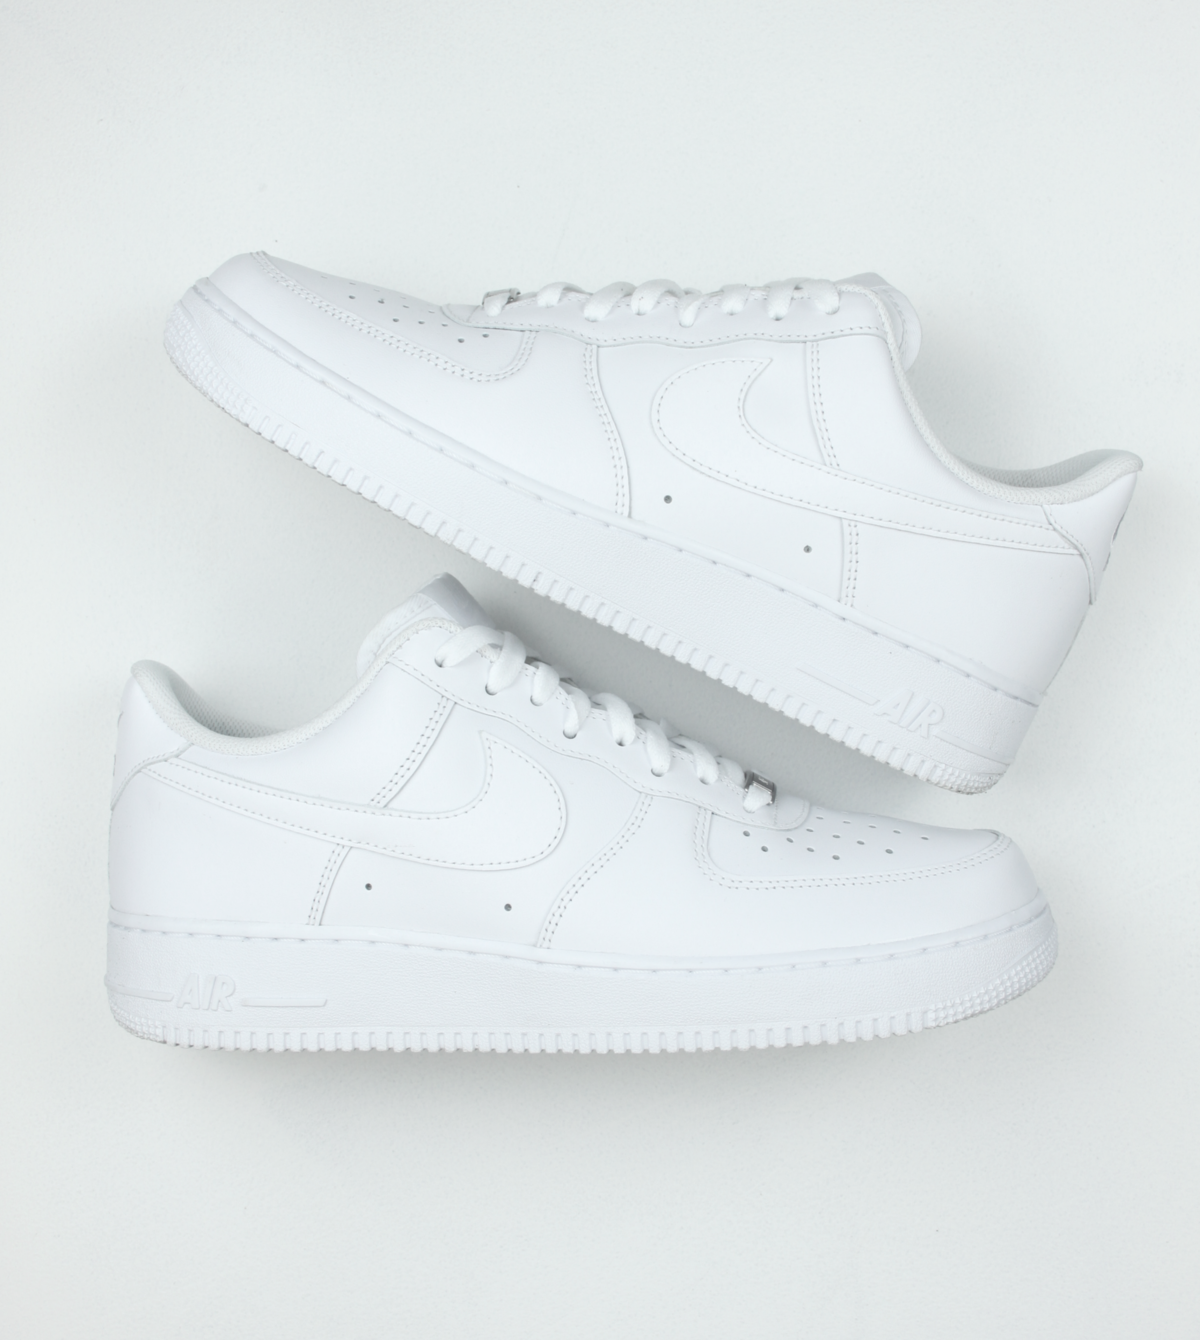 Looking To Customize Your Own Nike Air Force 1 Custom Sneakers Theshoecosmetics Allows You To Create Y Nike Shoes Air Force Nike Air Force Ones Nike Air Force